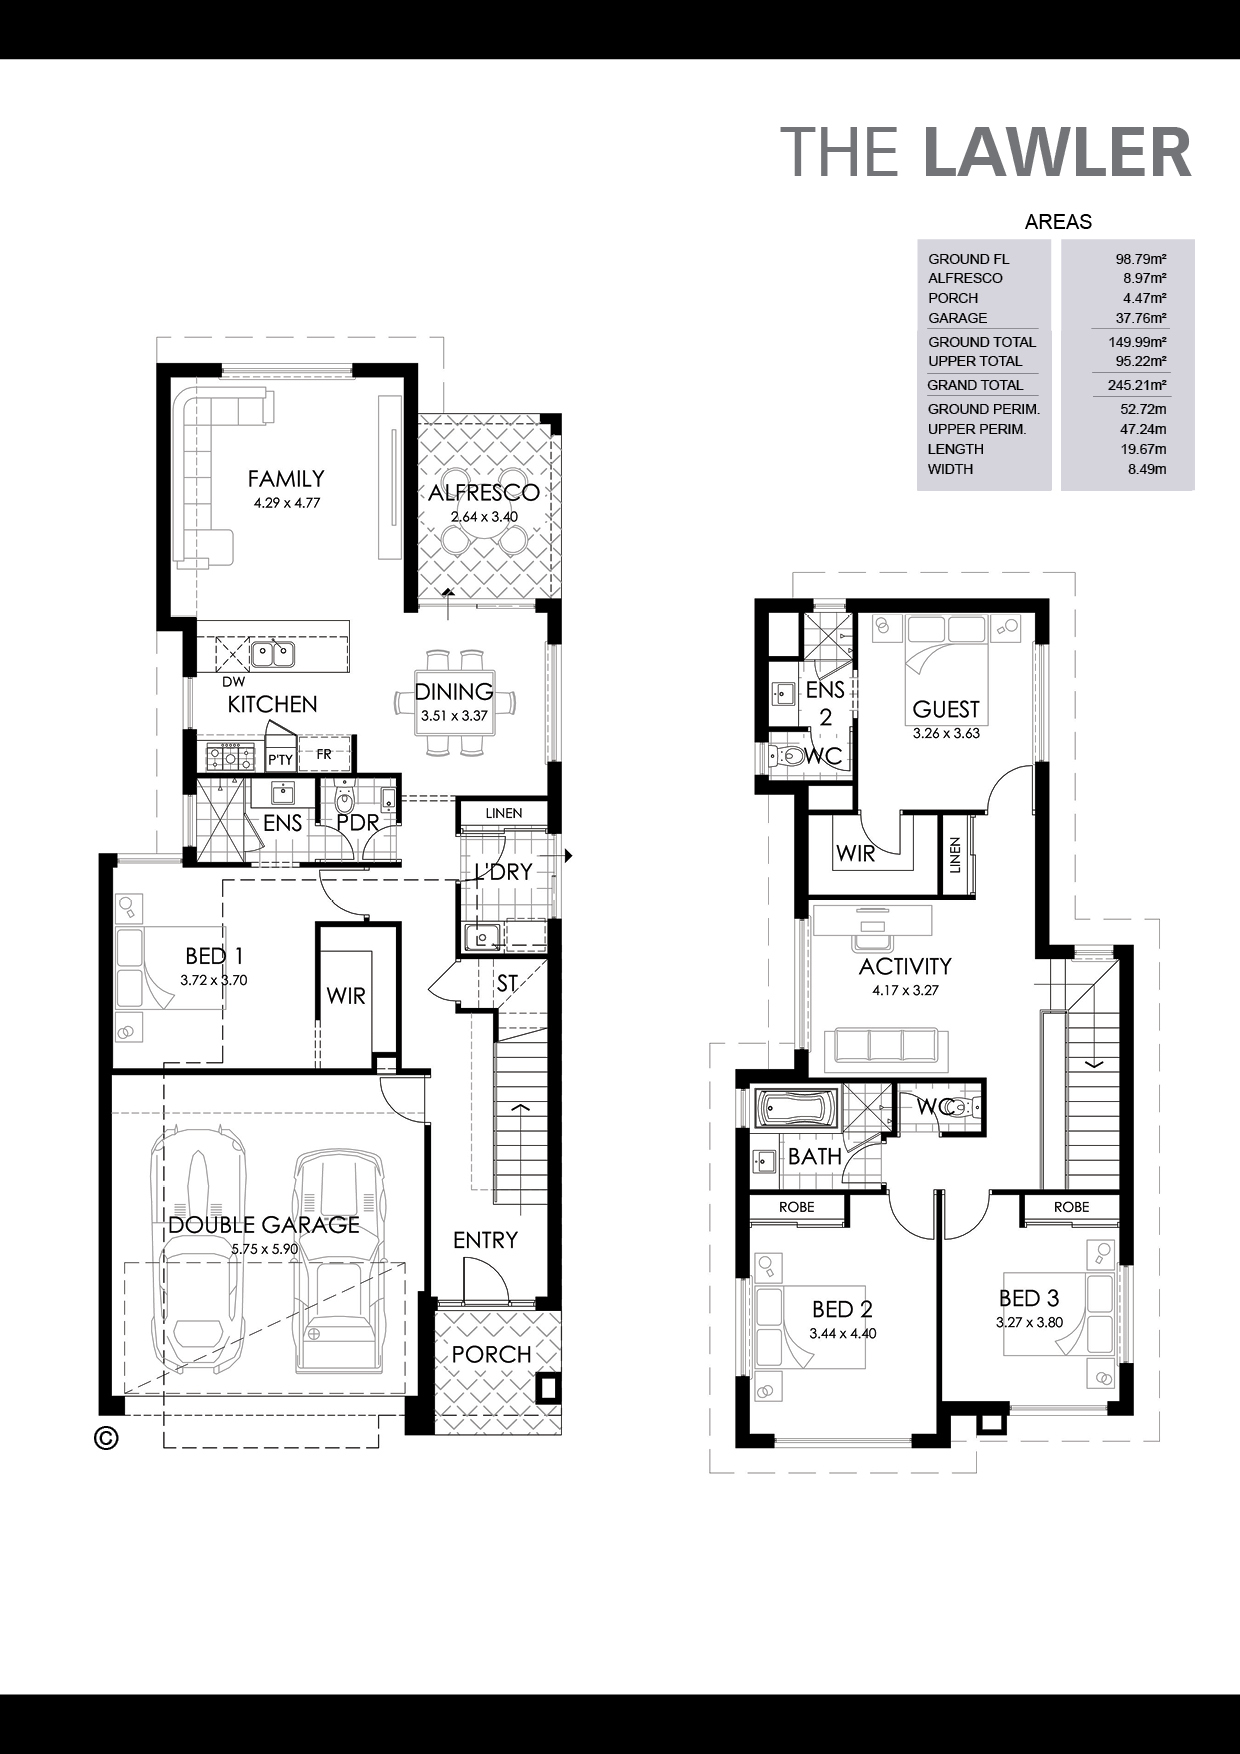 The Lawler Floorplan